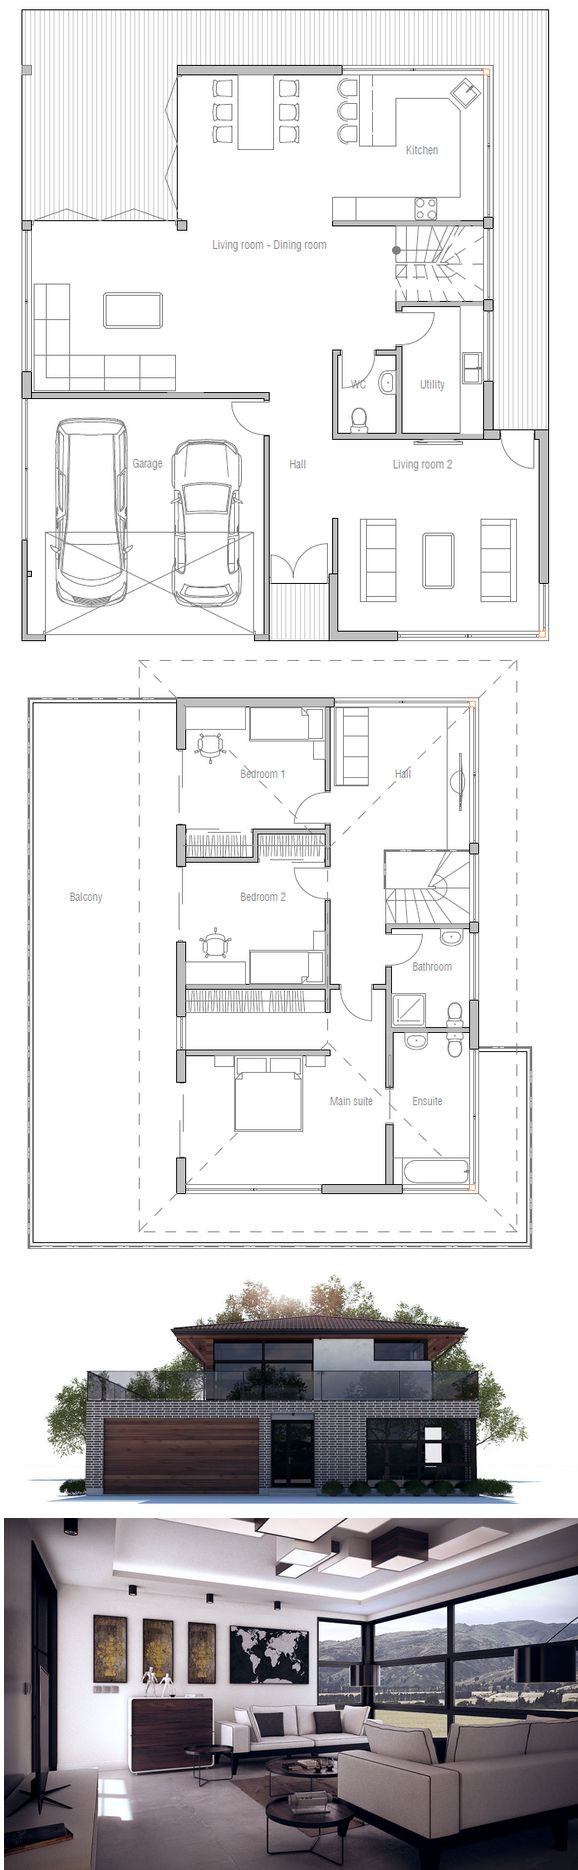 Small modern house floor plan from concepthome com